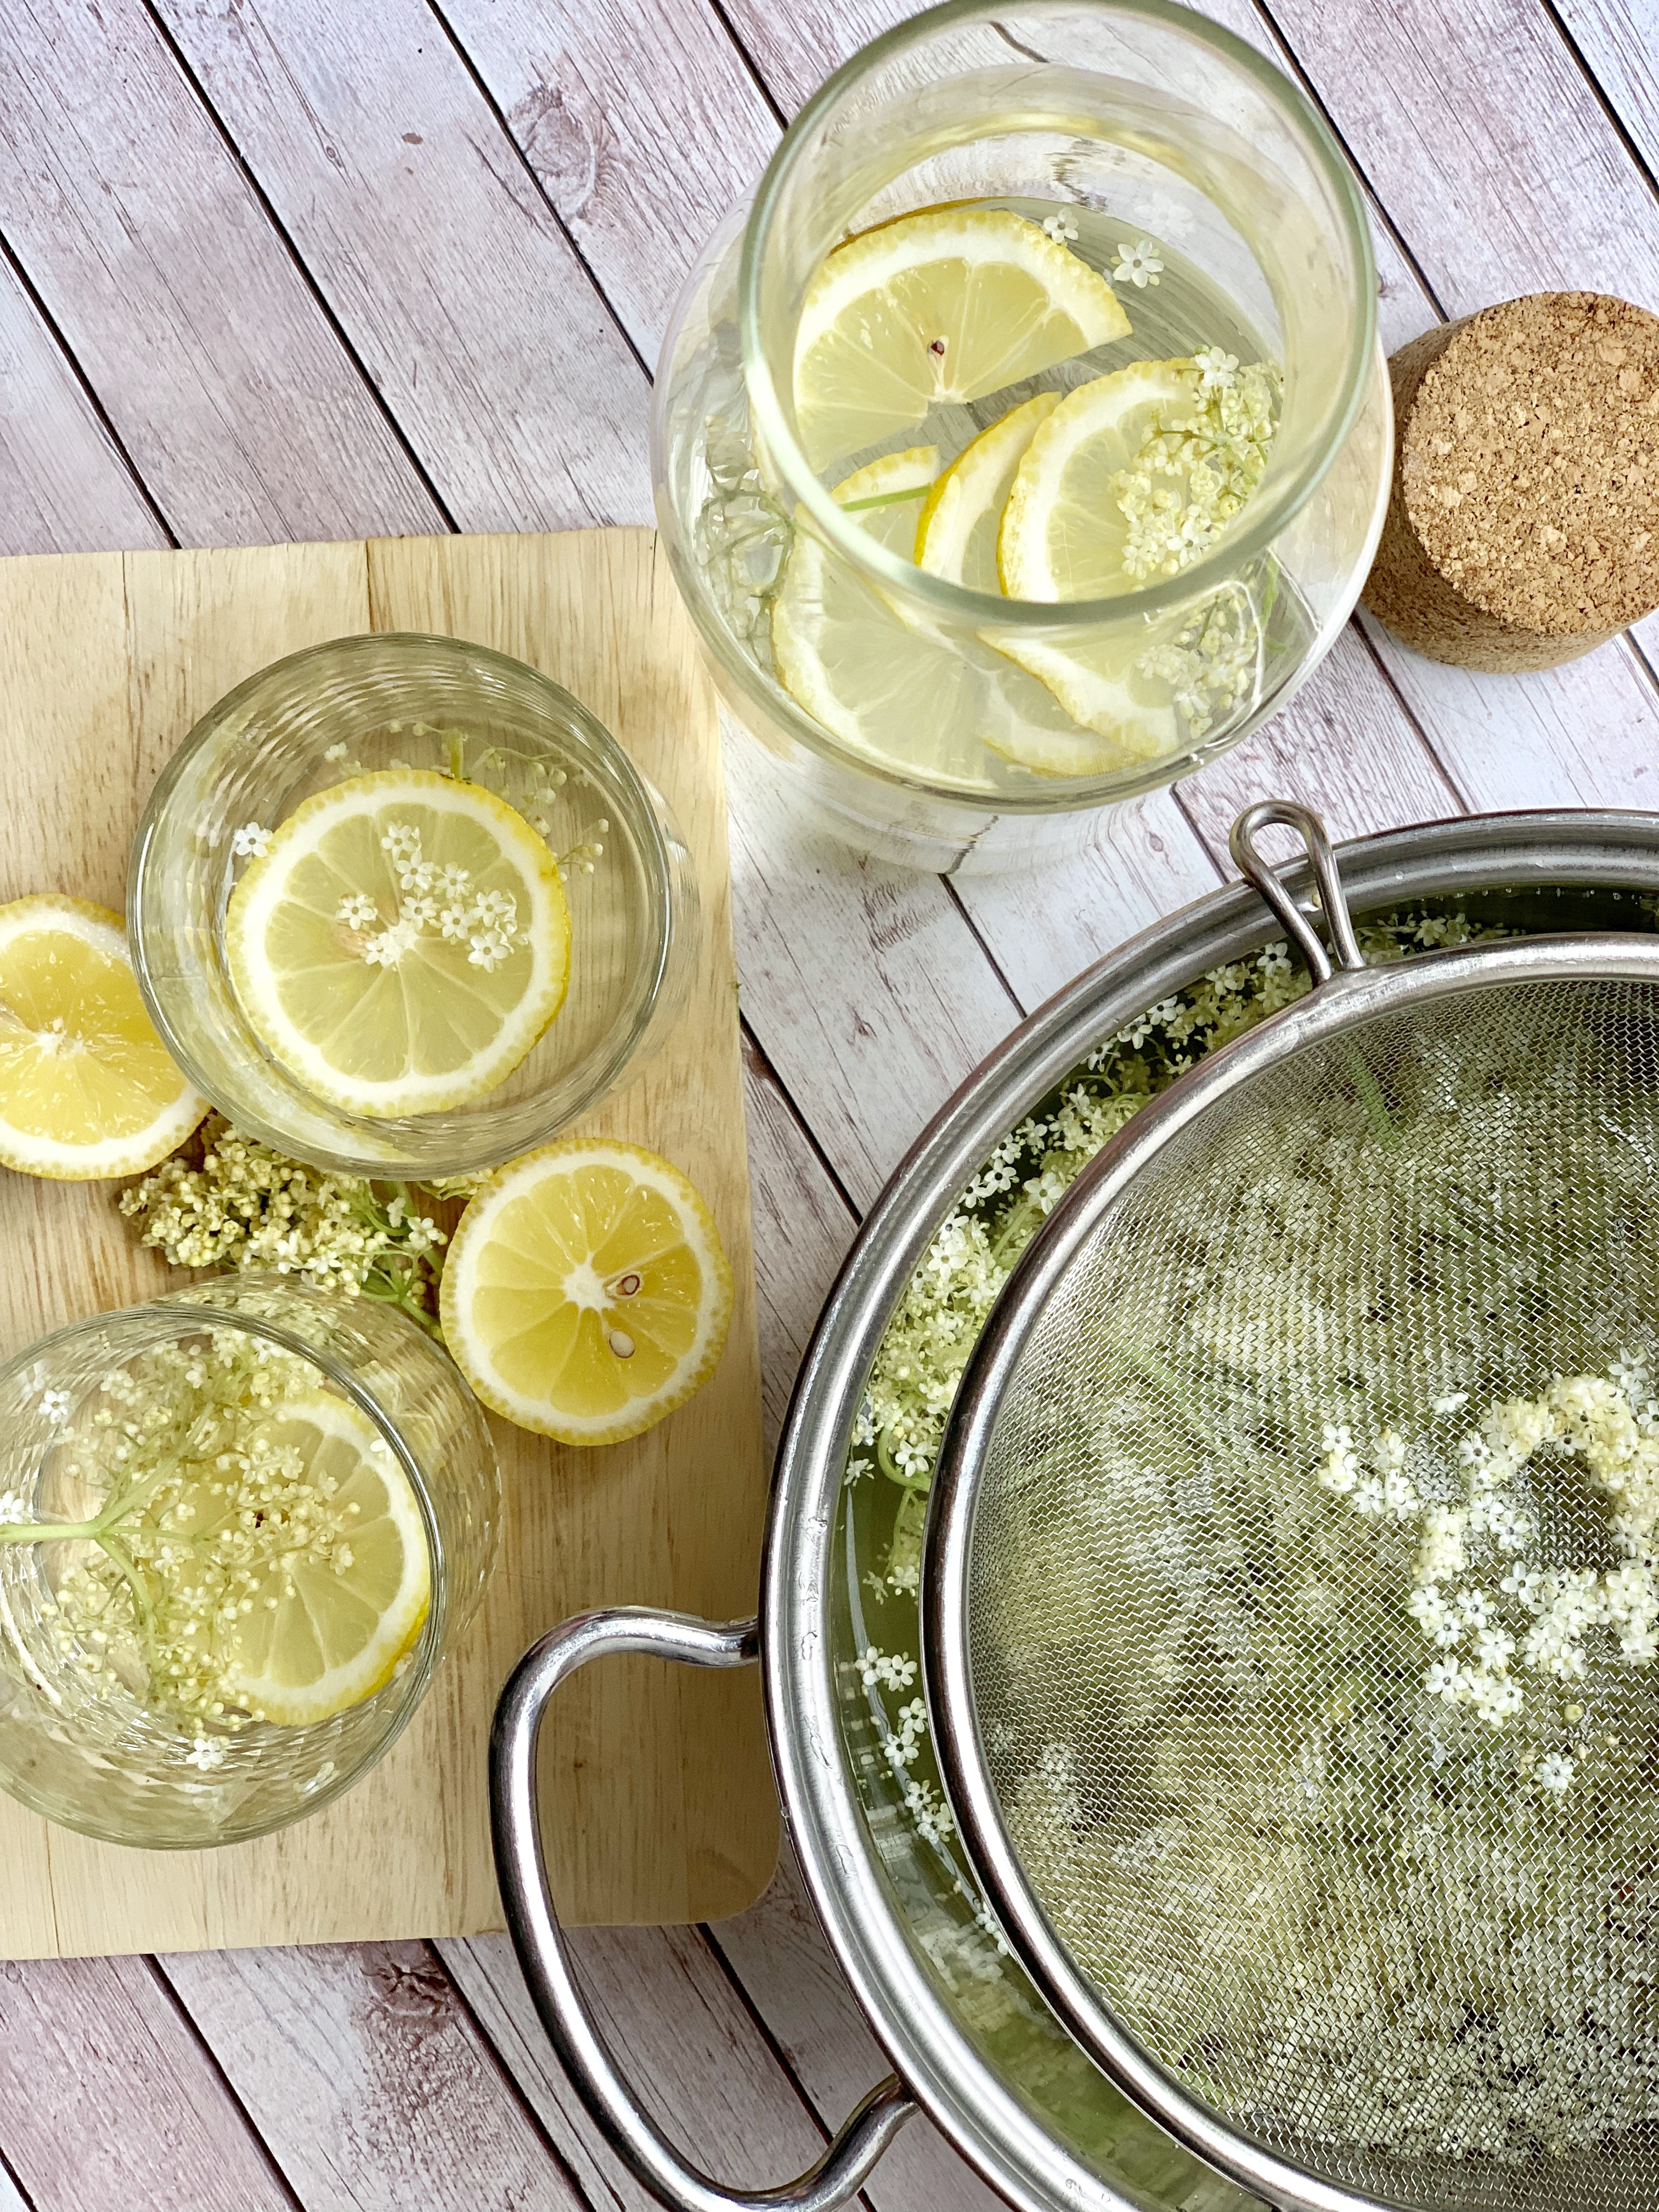 Picture of a procedure to make elderflower syrup